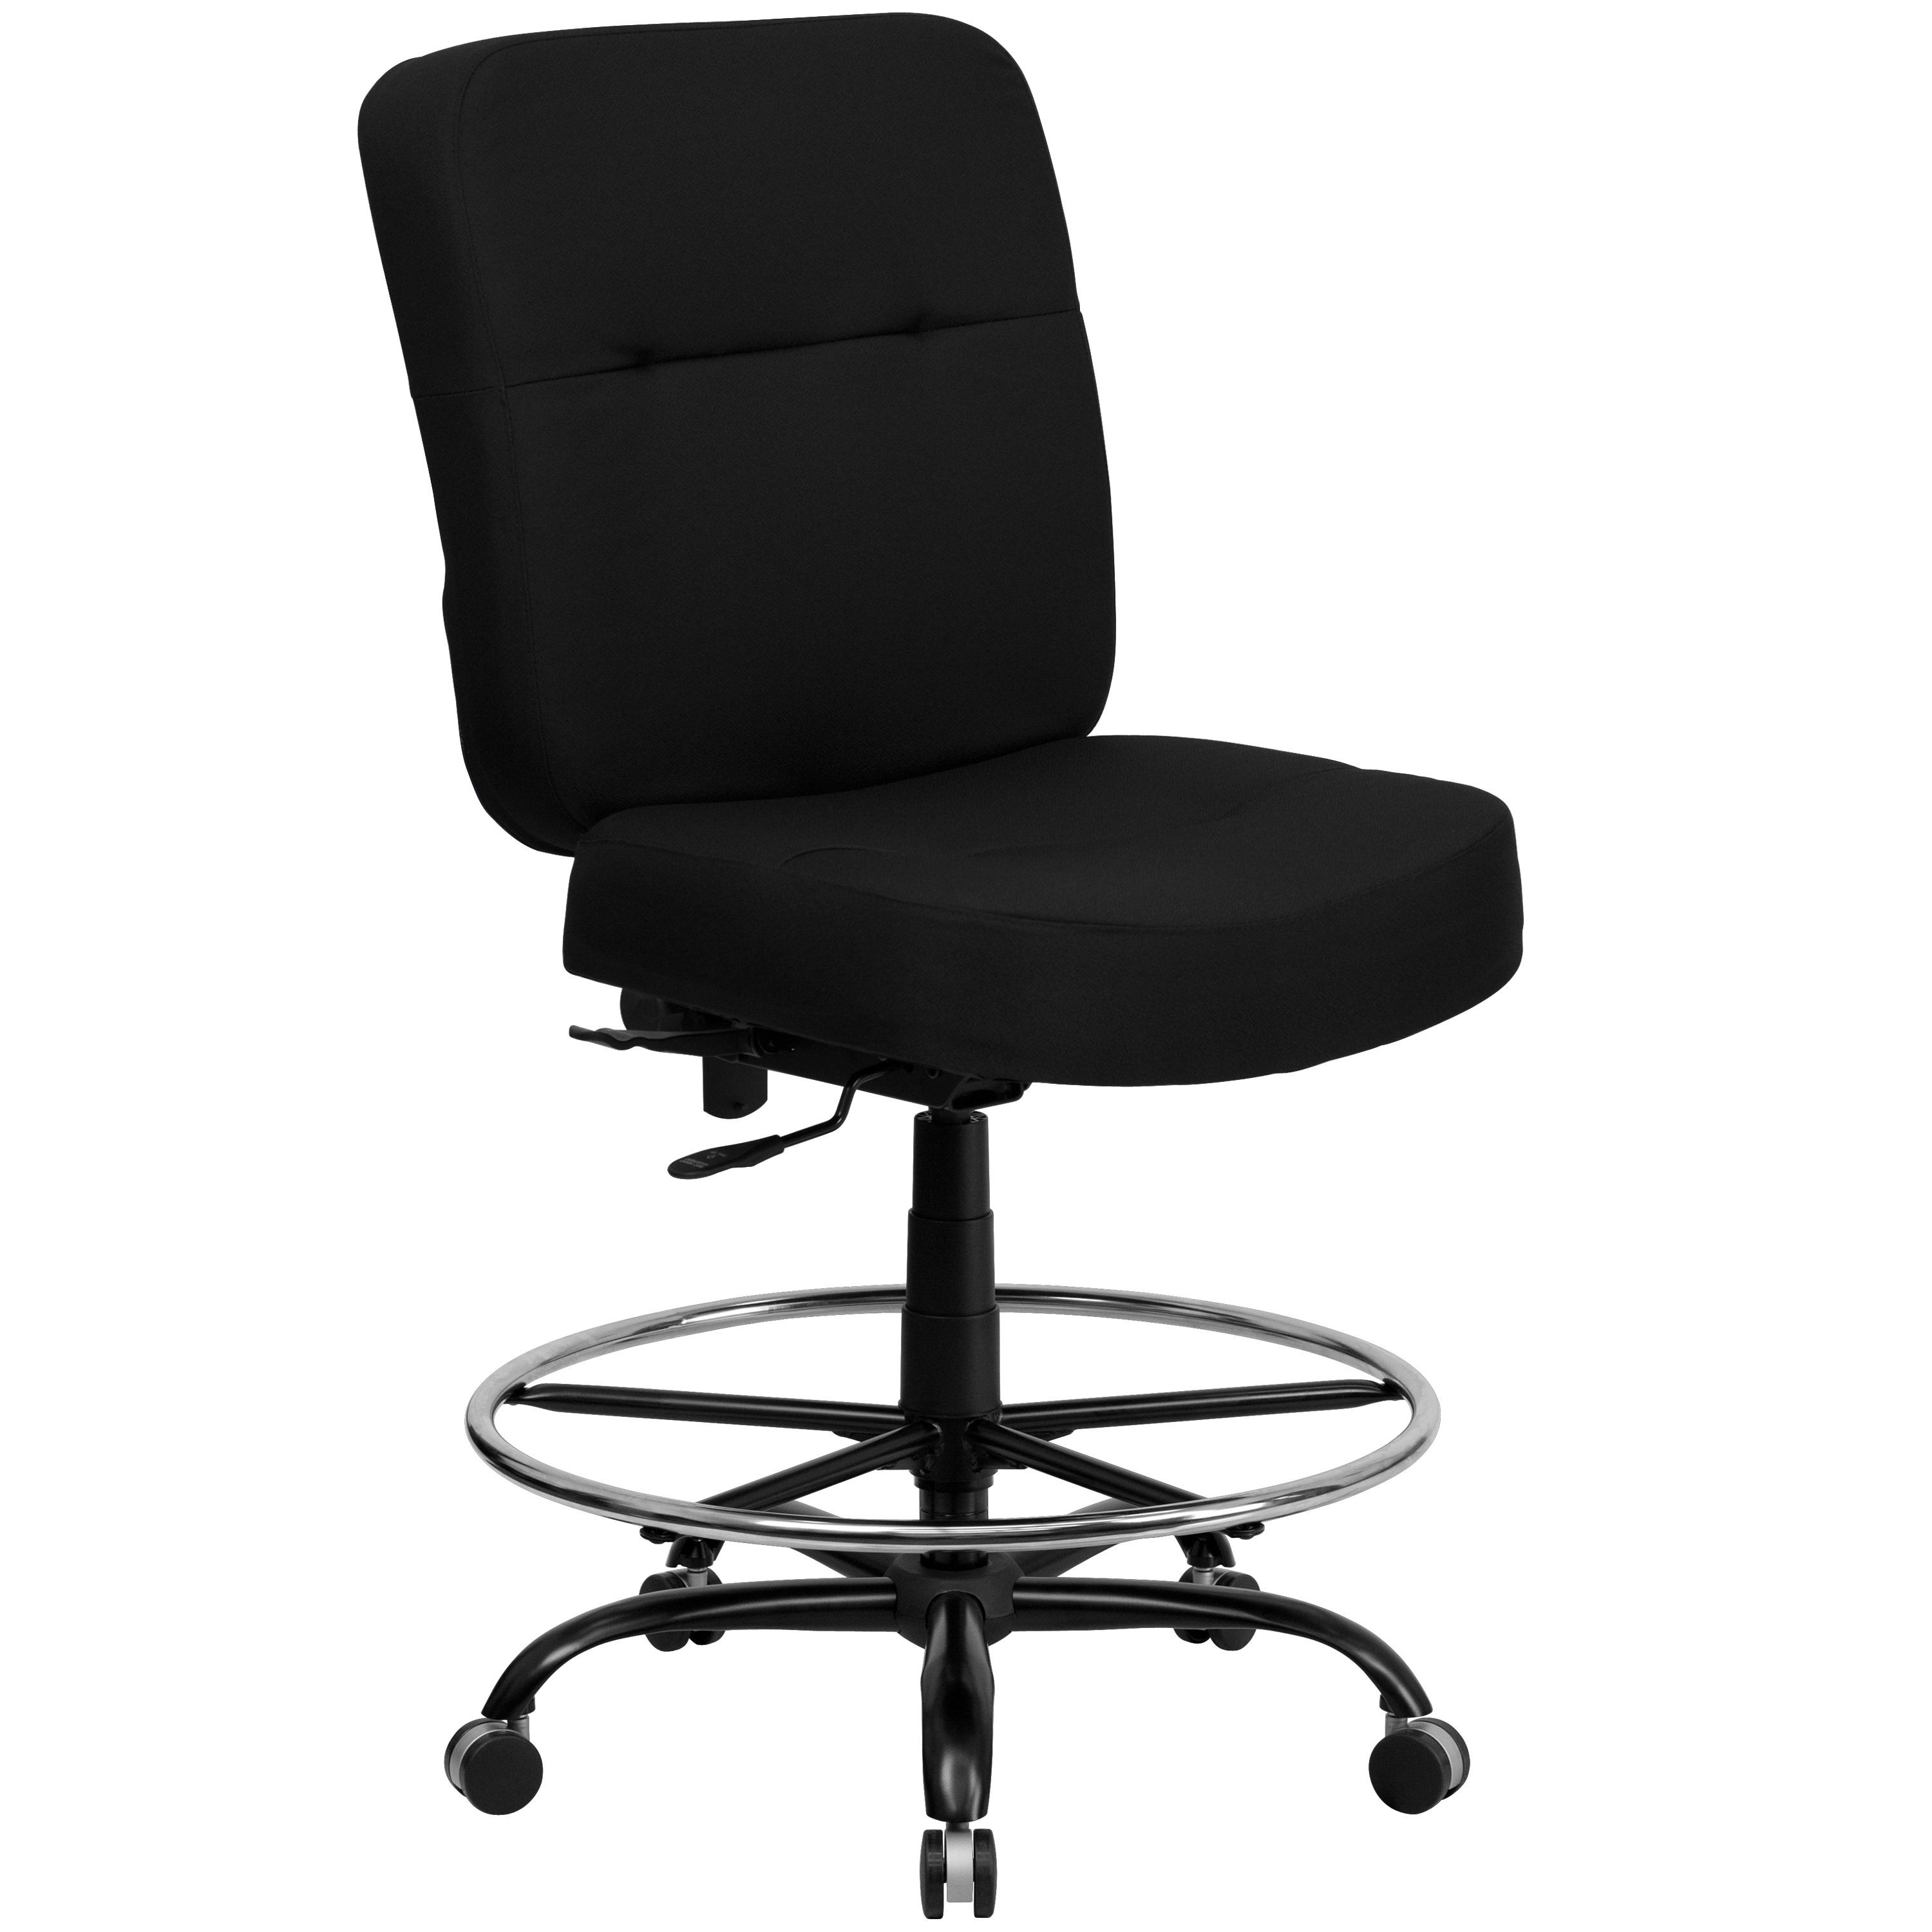 Flash Furniture WL-735SYG-BK-D-GG HERCULES Series Big & Tall Black Fabric Drafting Stool with Extra Wide Seat, 400 Lb. Capacity